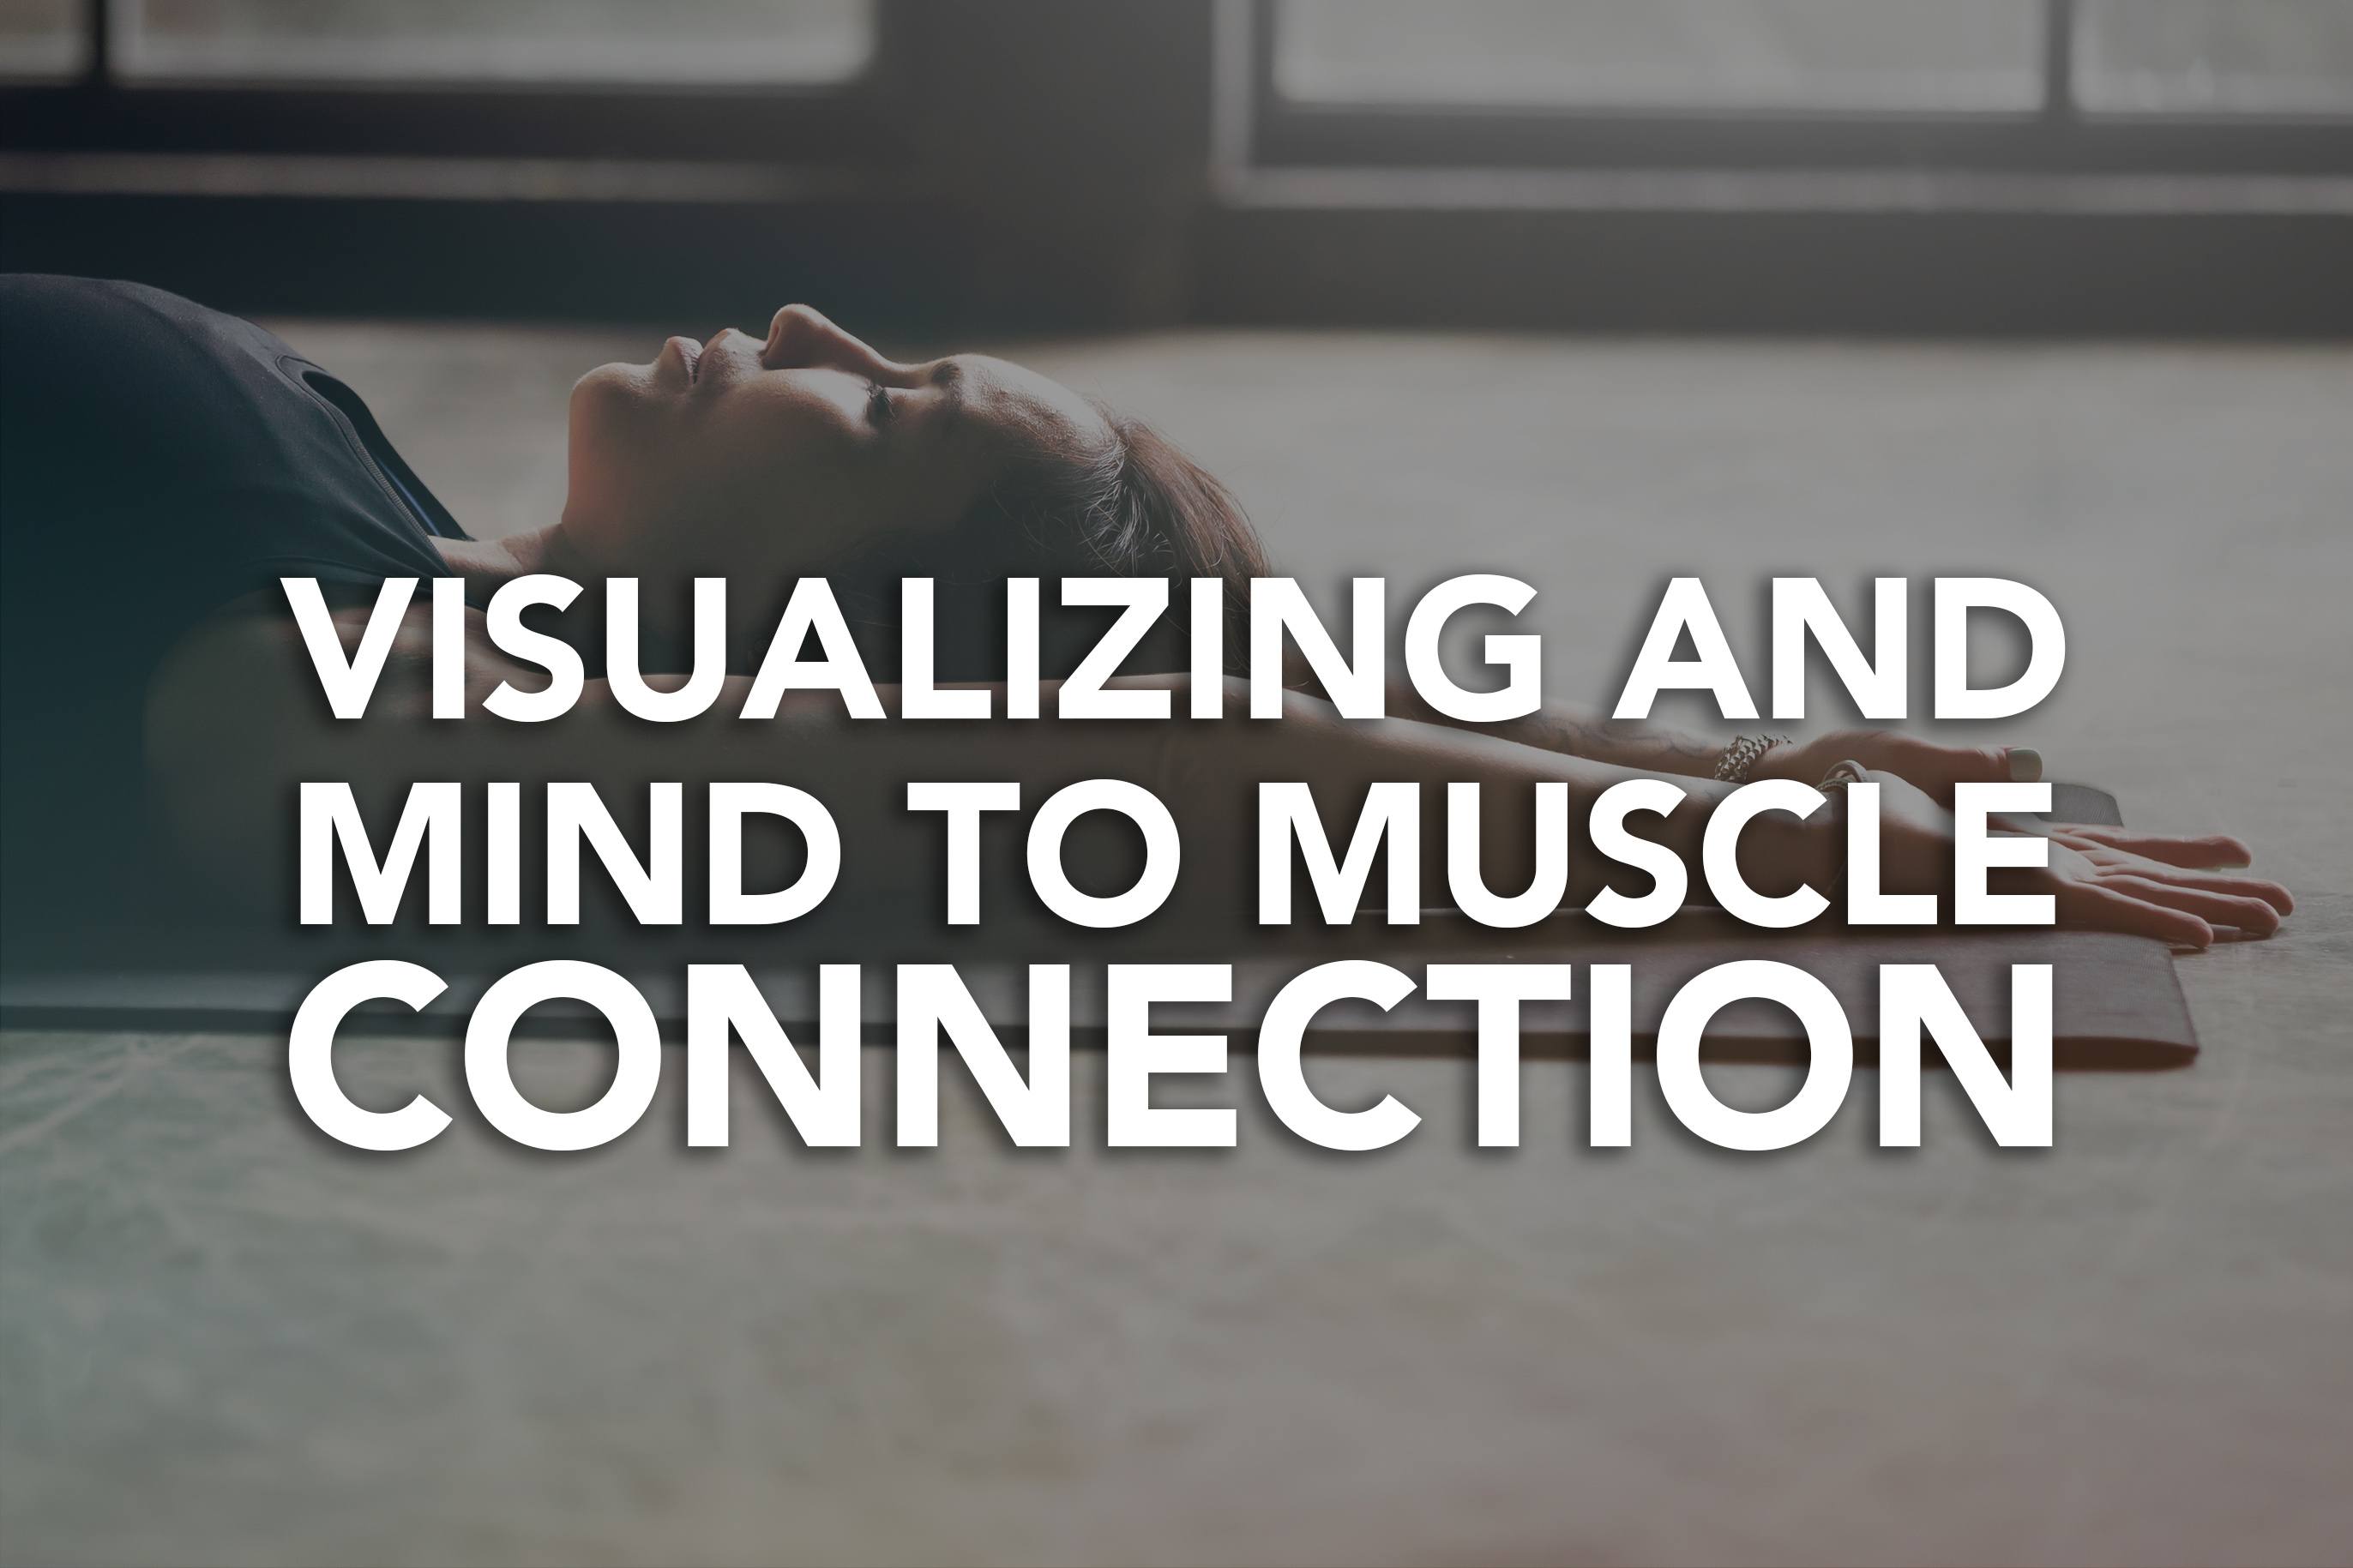 Visualizing and Mind to Muscle Connection: How Do These Two Help With a Good Workout?